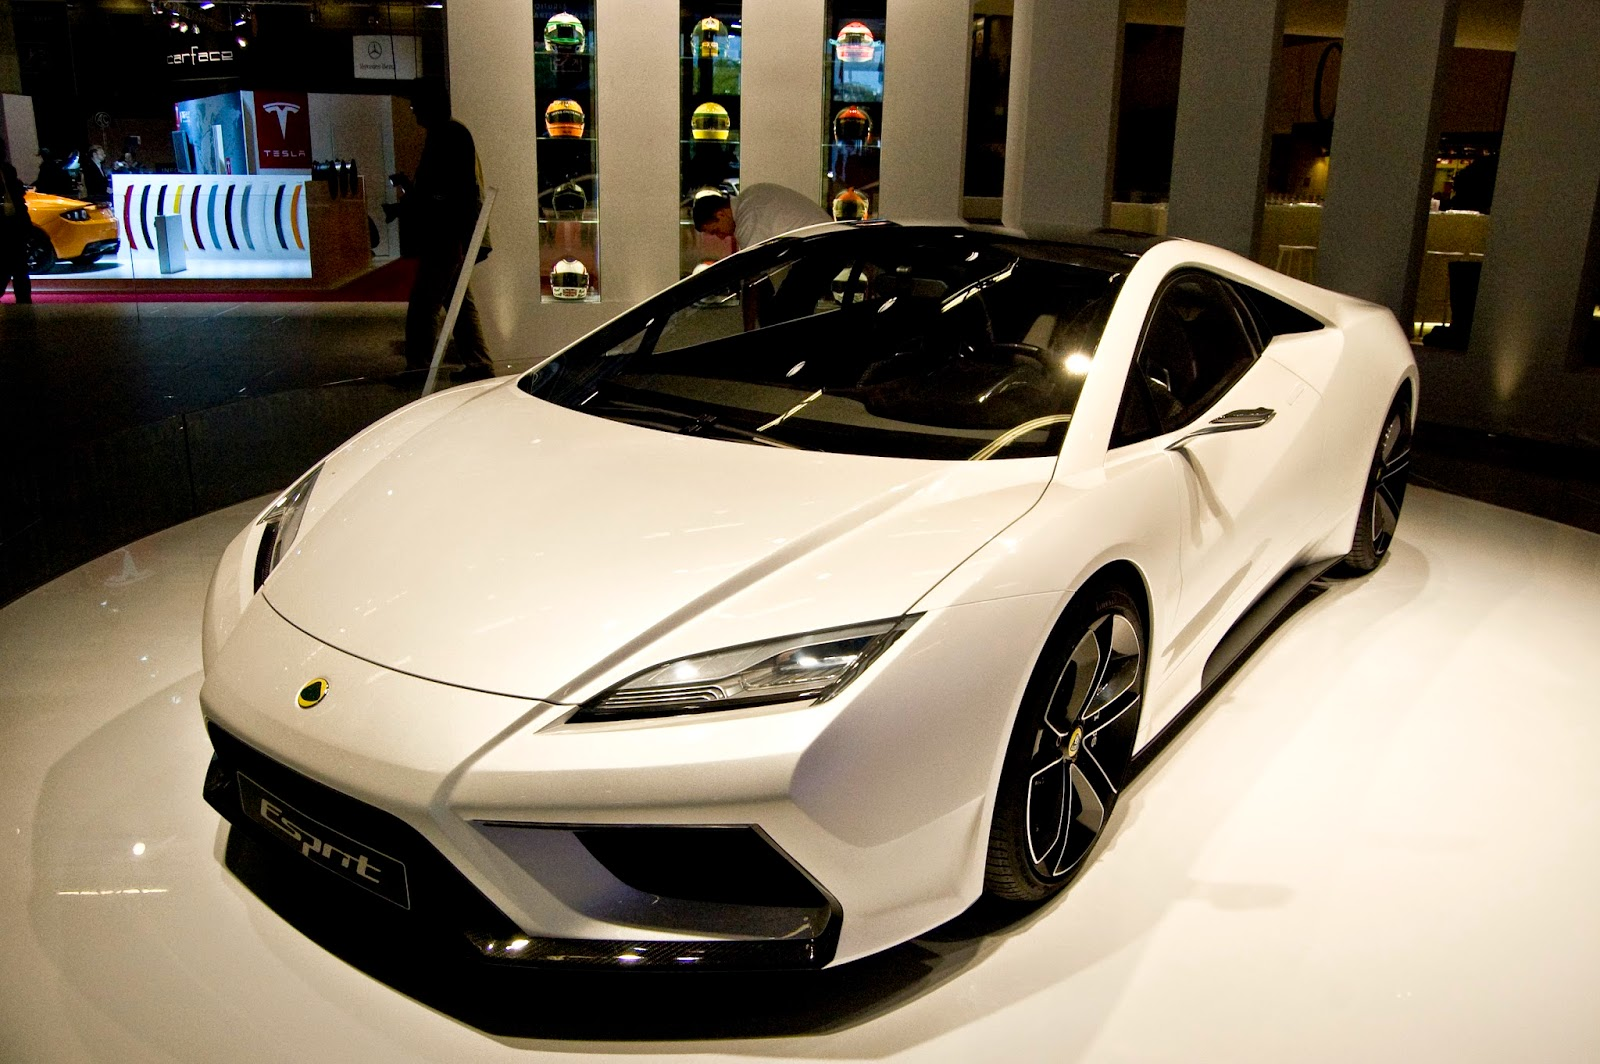 Proposed new Lotus Esprit (now cancelled)